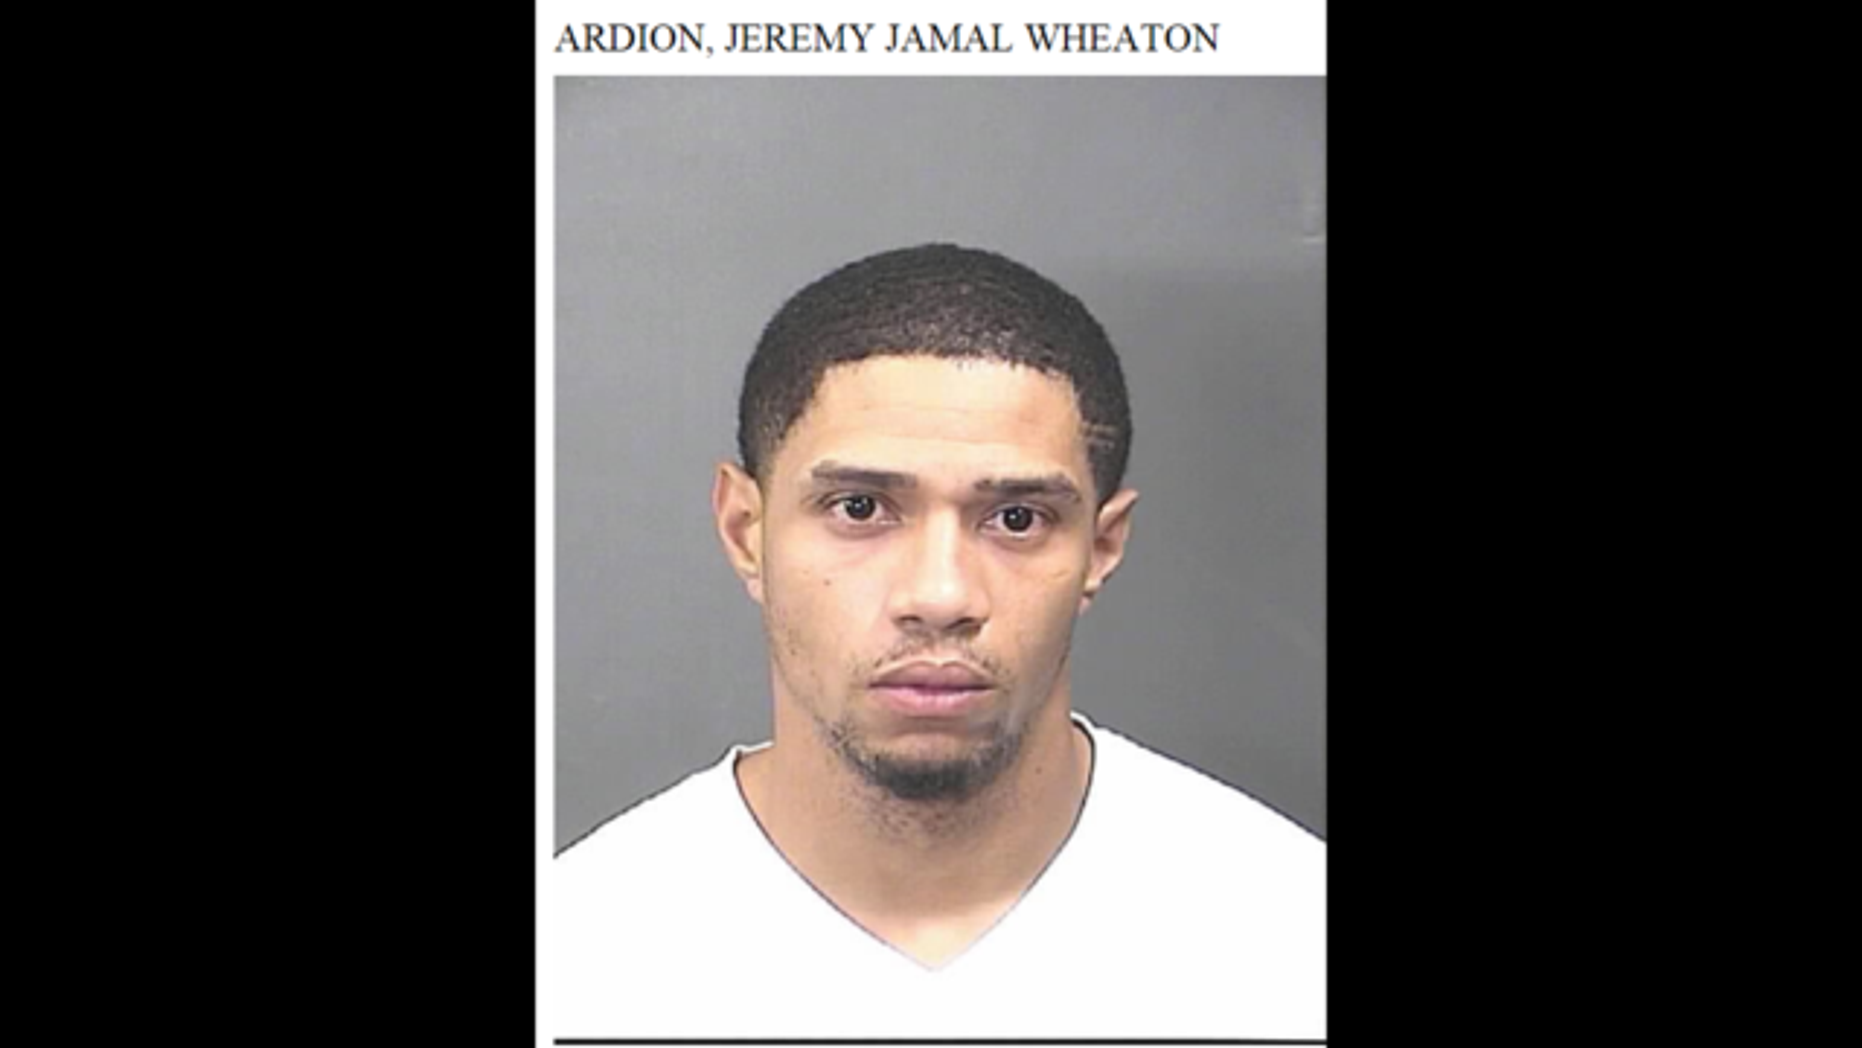 Police called Jeremy Jamal Wheaton Ardion a person of interest in the case.